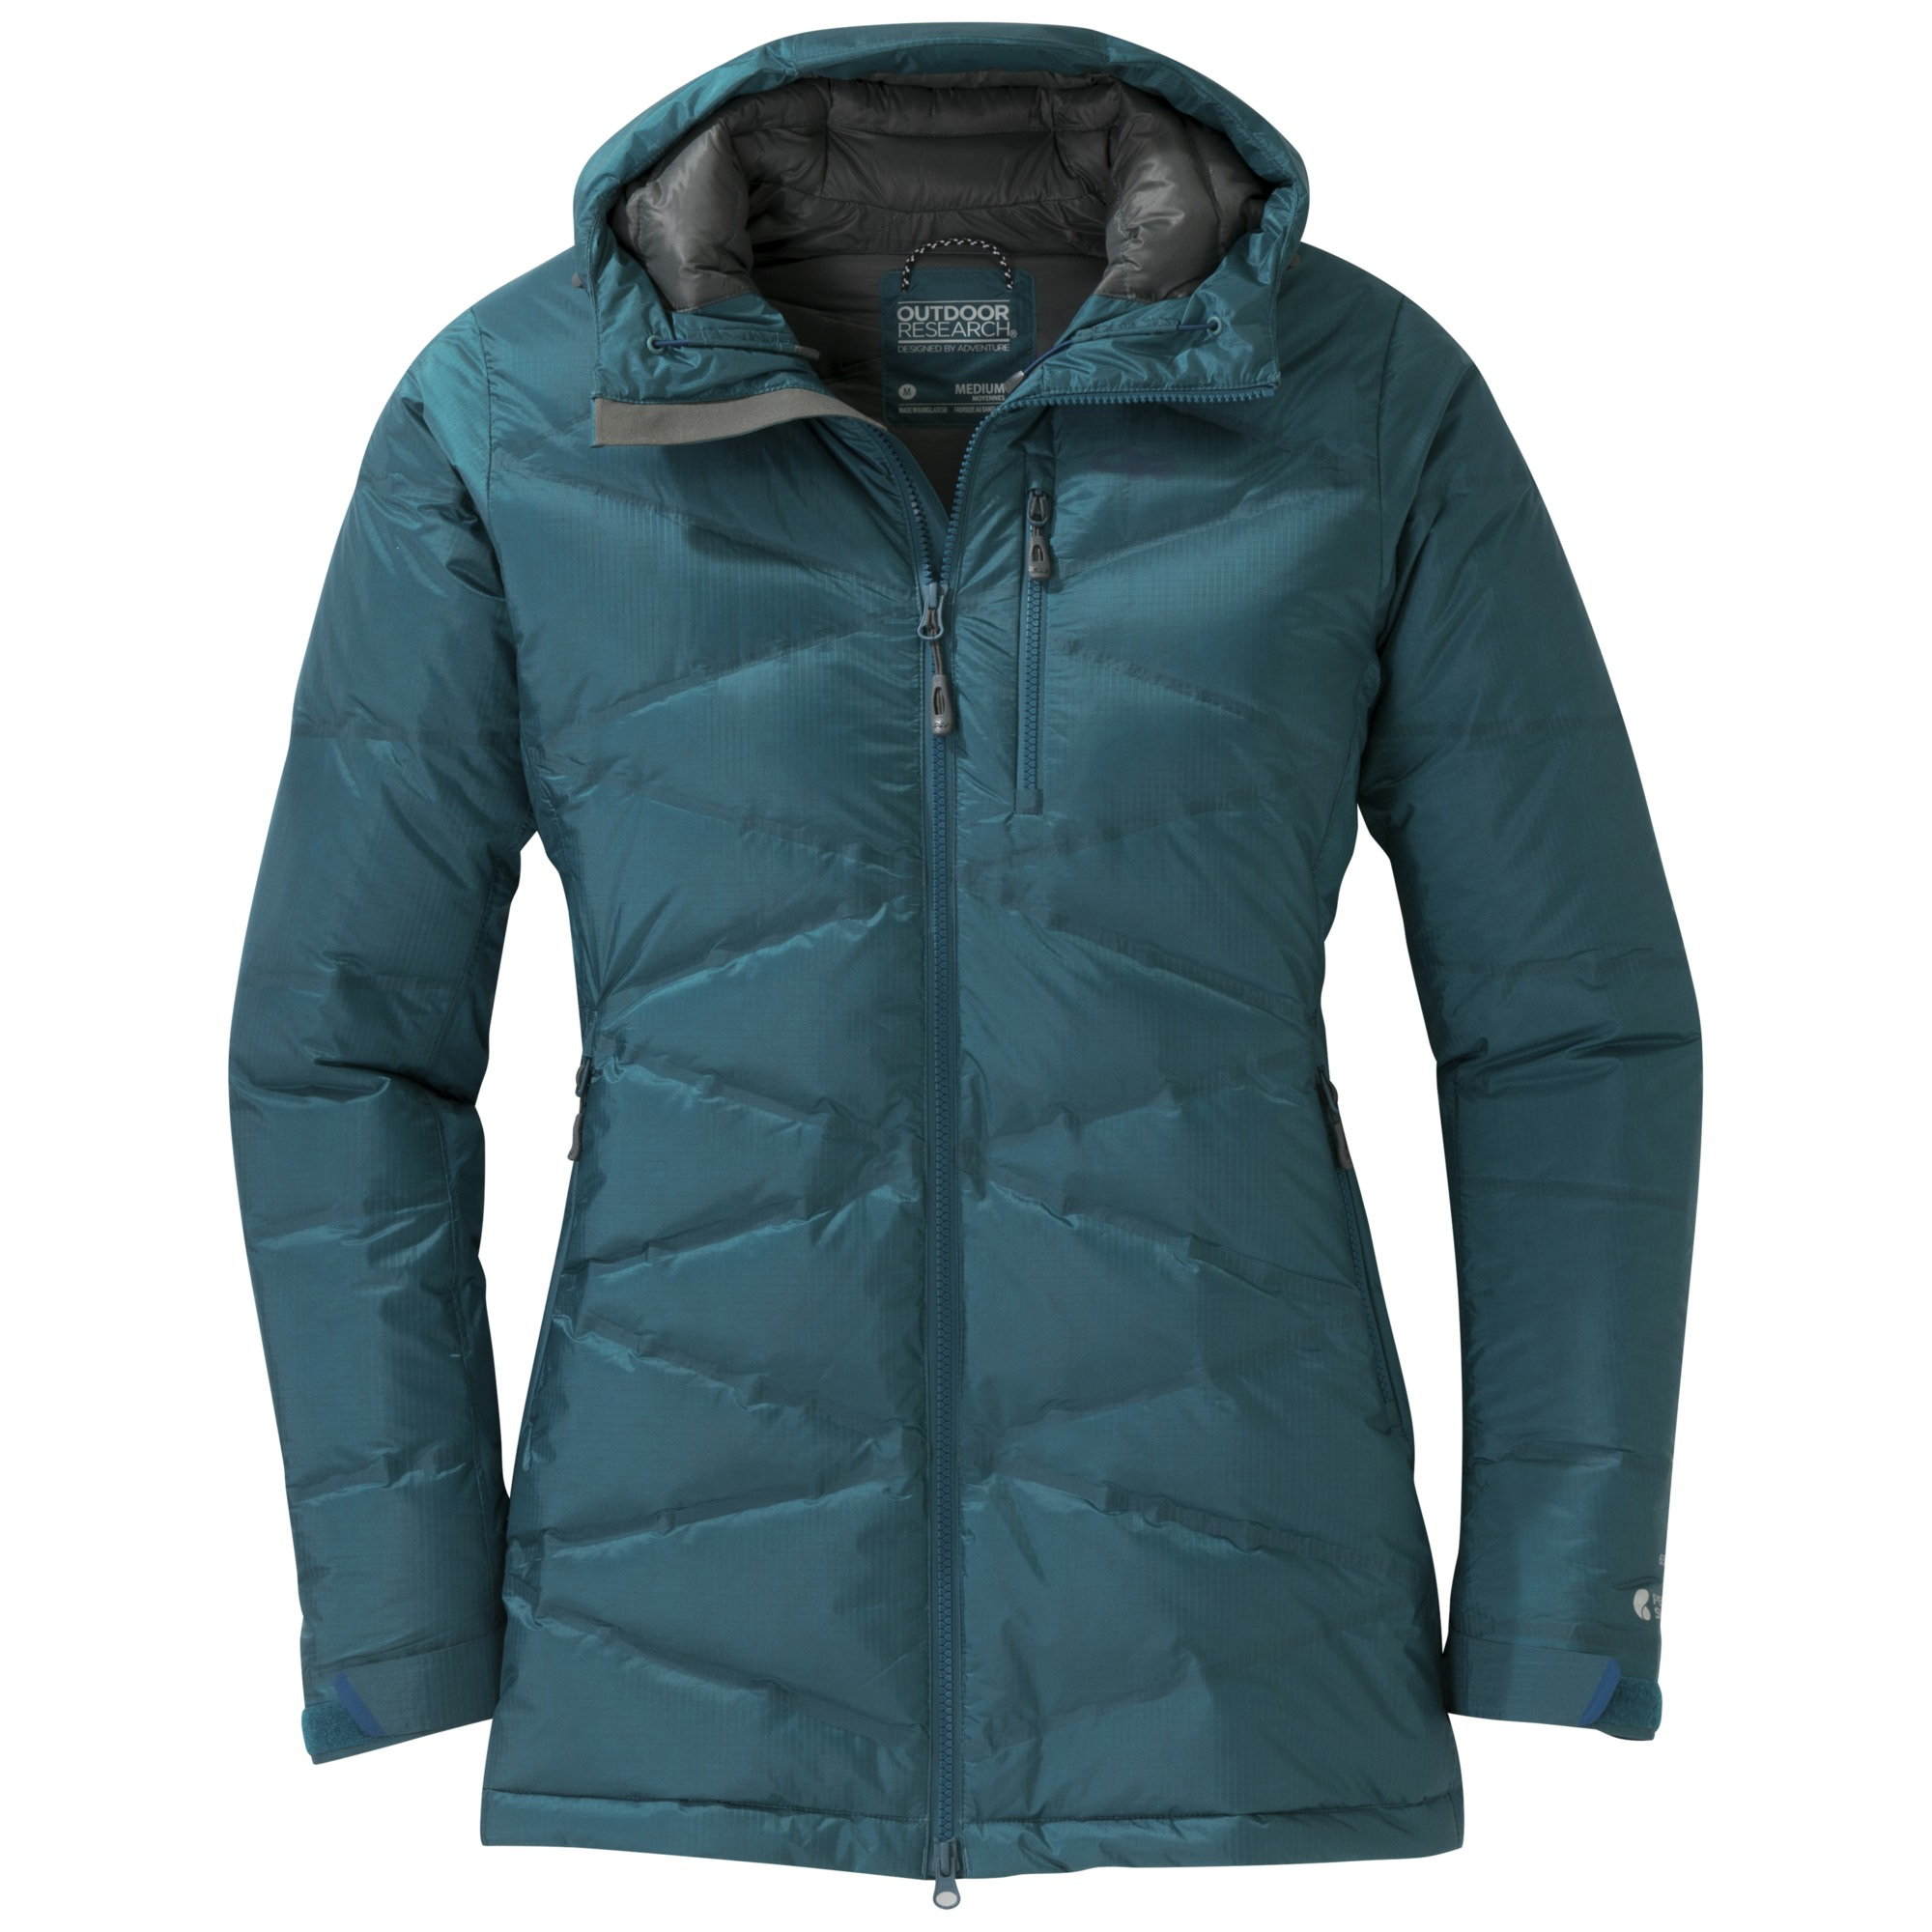 eae71bc71 Women's Floodlight Down Parka - washed peacock | Outdoor Research